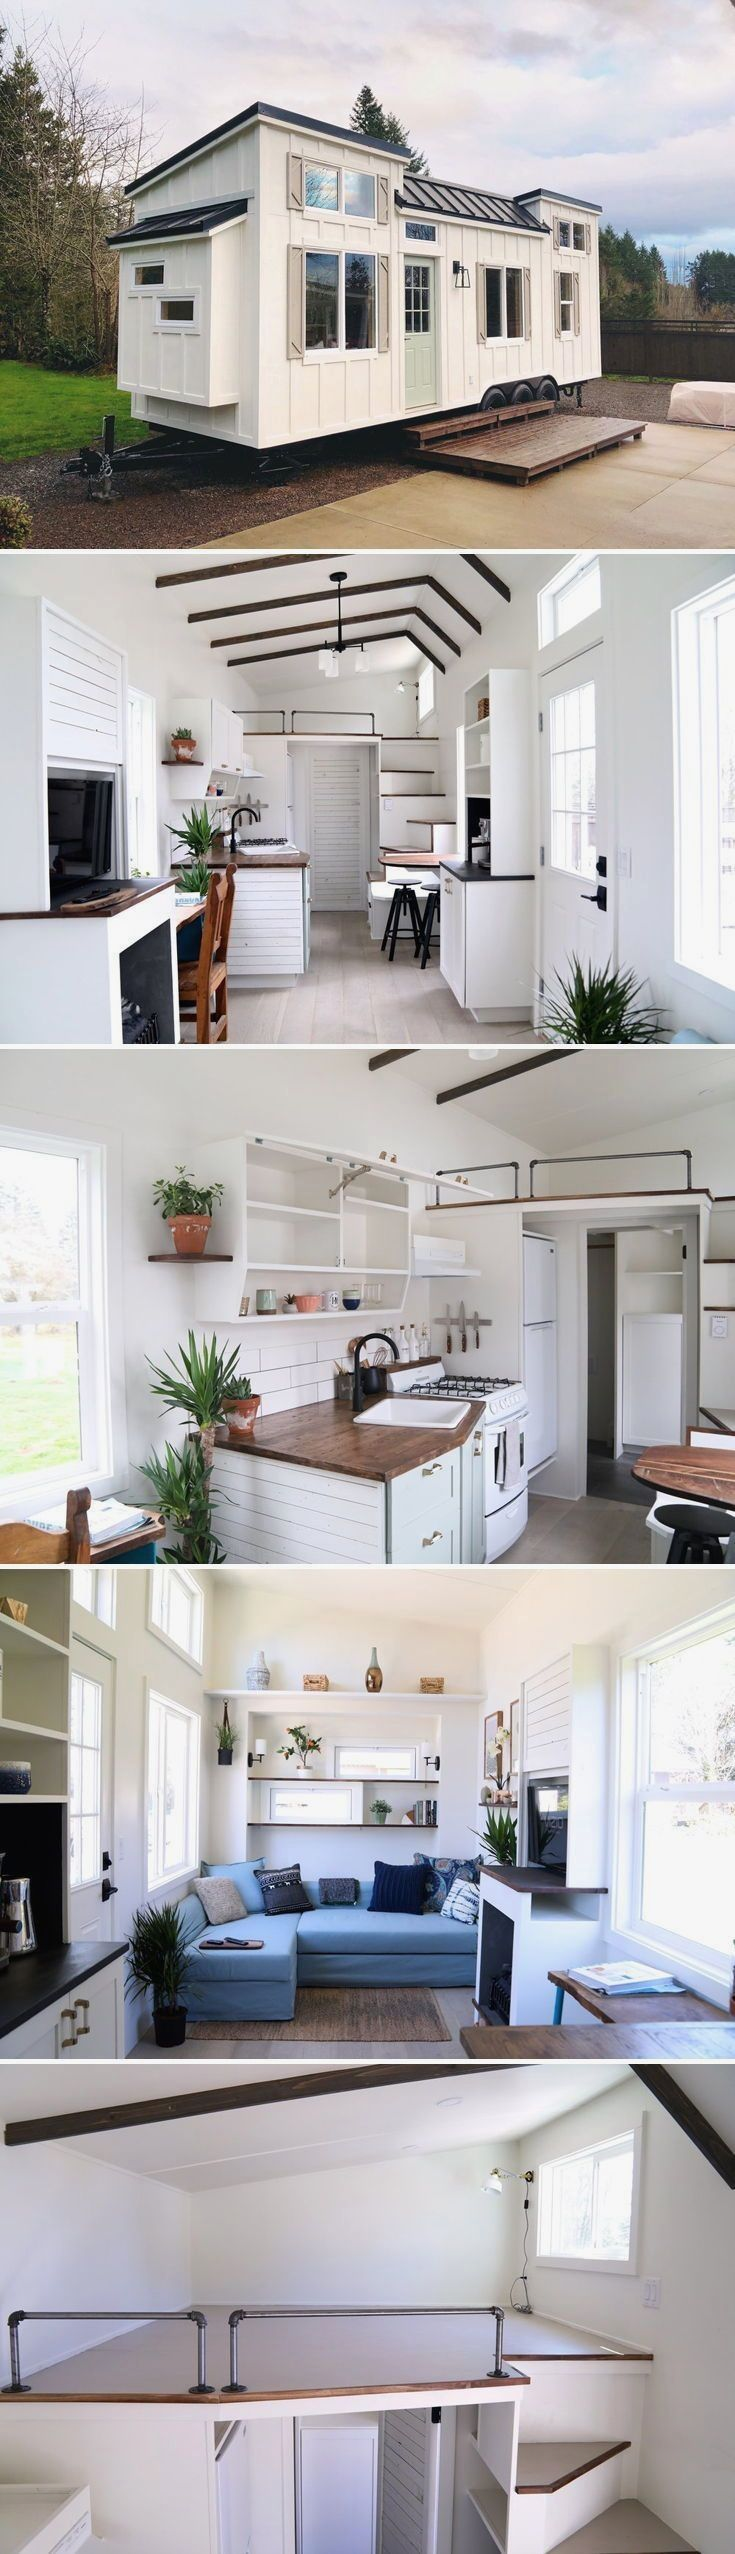 3486 best Tiny Houses | Micro houses images on Pinterest | Small ...